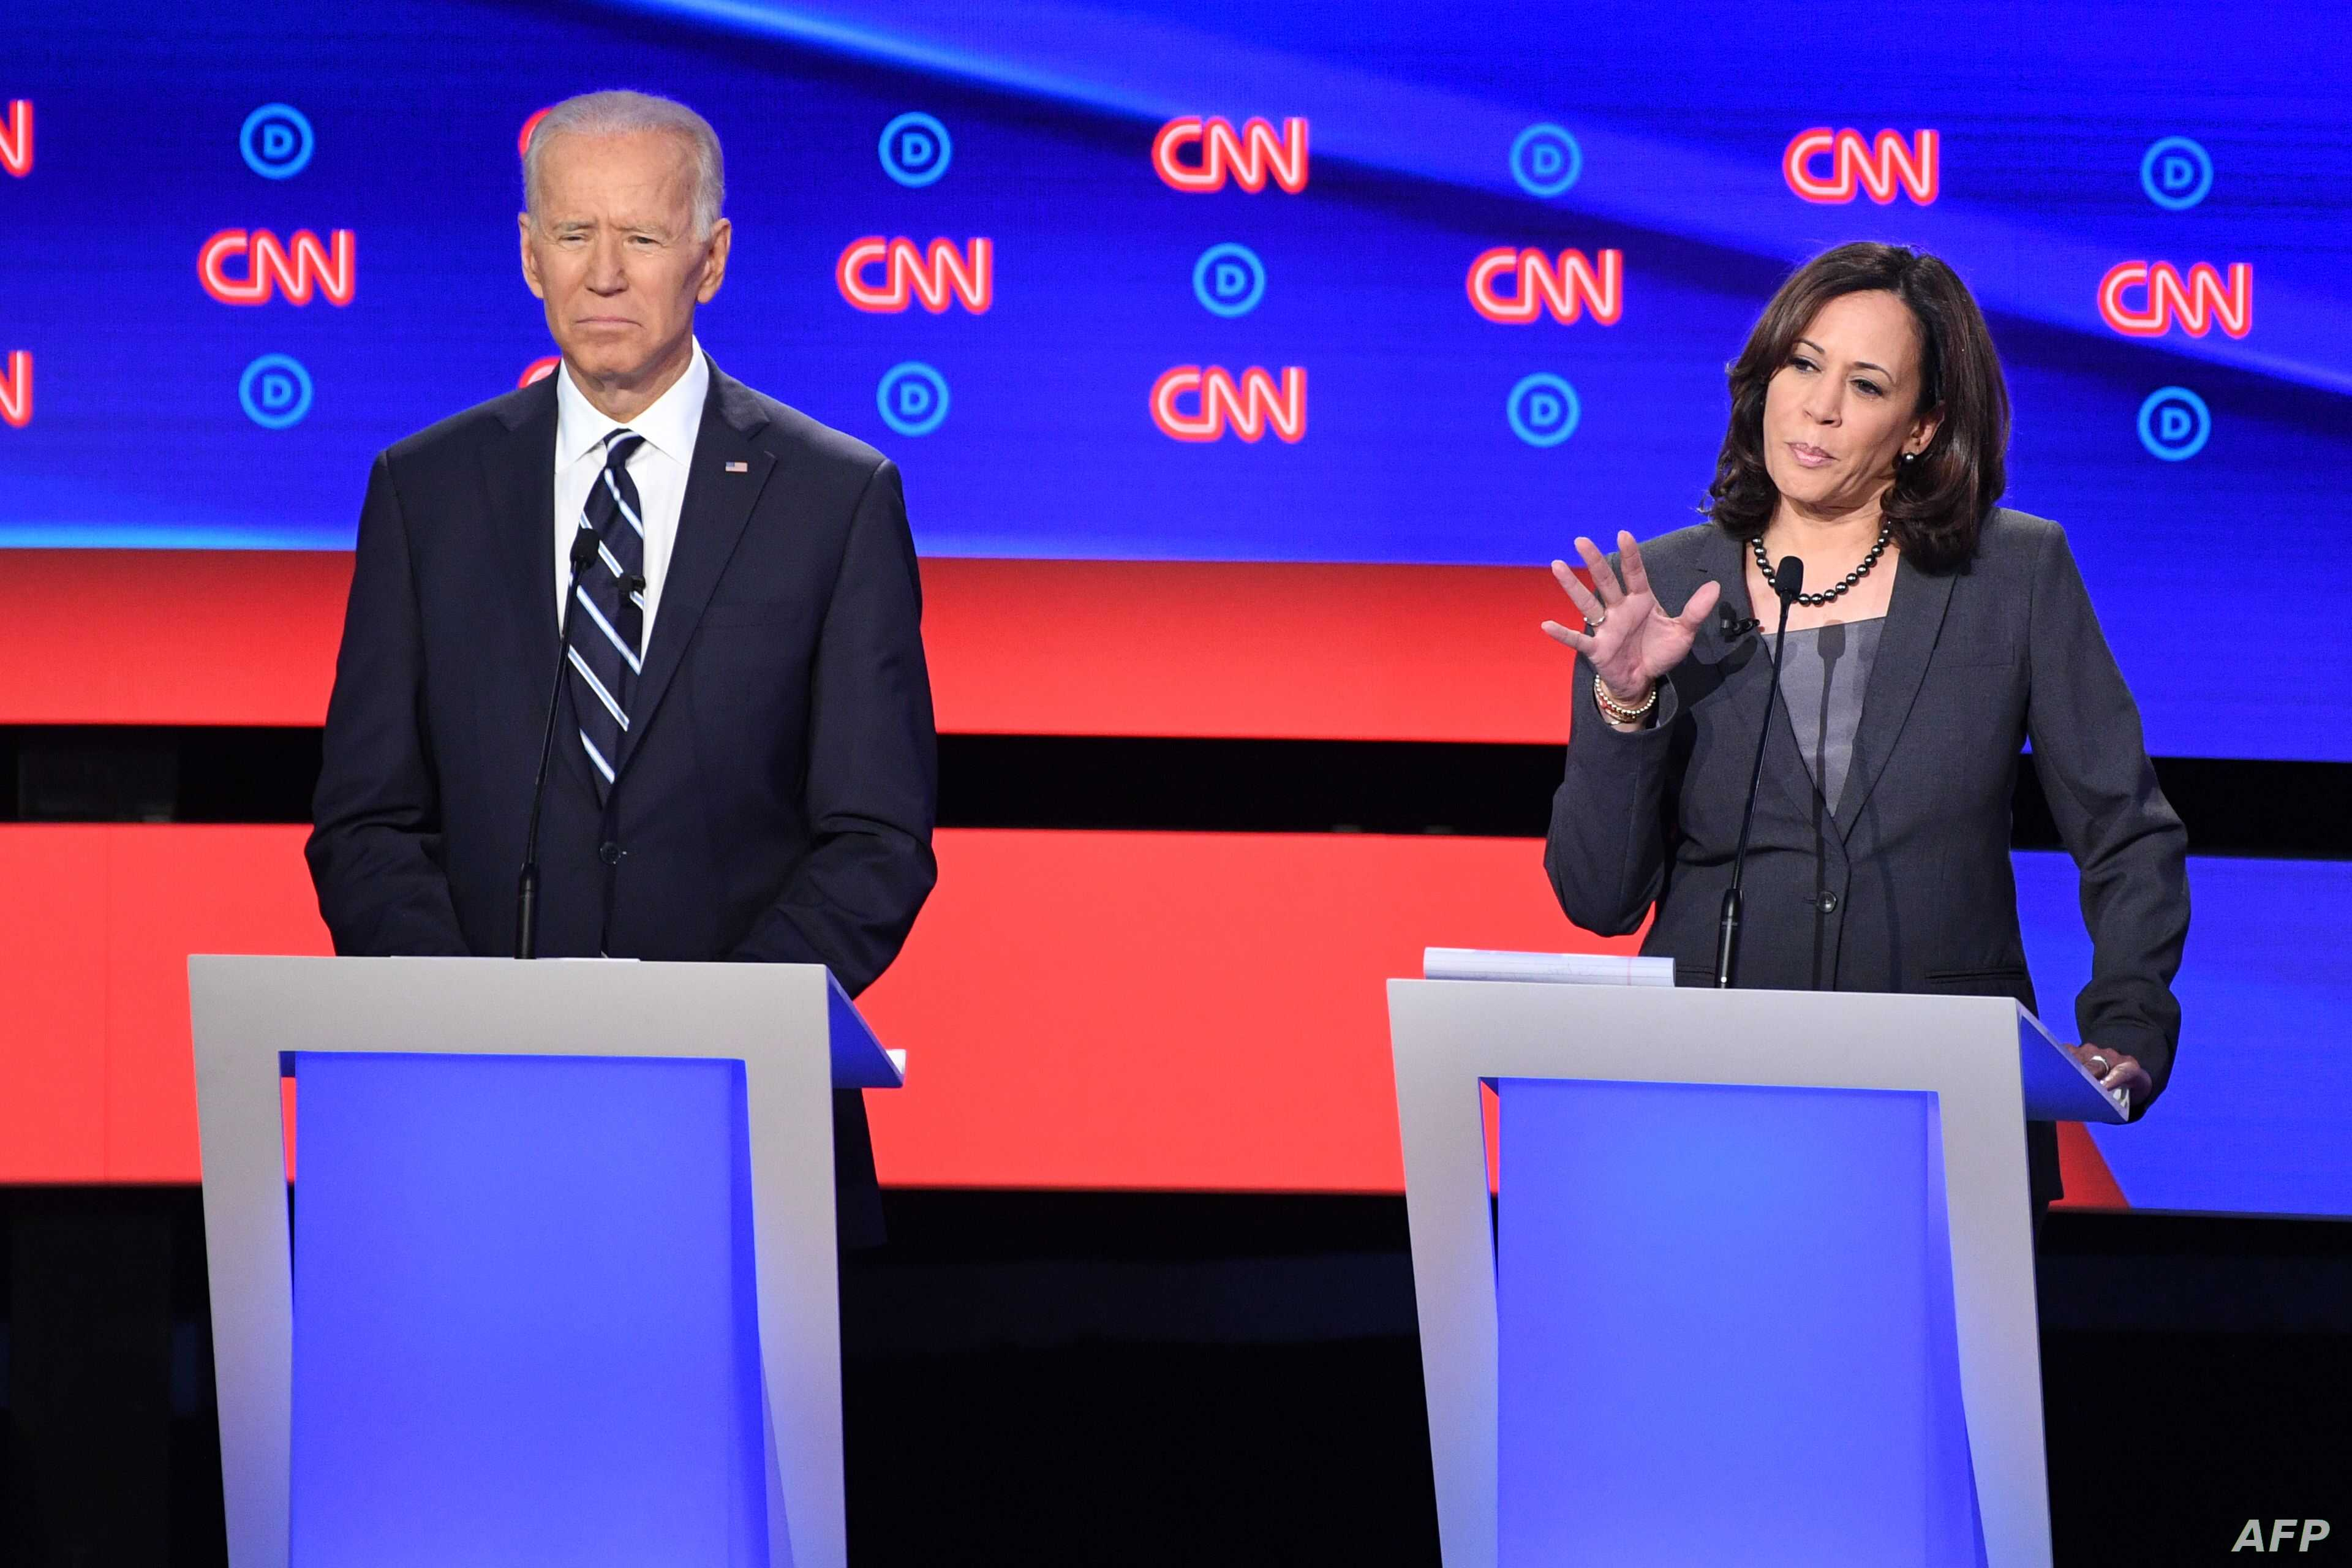 Democratic presidential hopeful U.S. Senator from California Kamala Harris, right, delivers her closing statement flanked by former Vice President Joe Biden during the Democratic primary debate hosted by CNN at the Fox Theatre in Detroit, July 31, 2019.